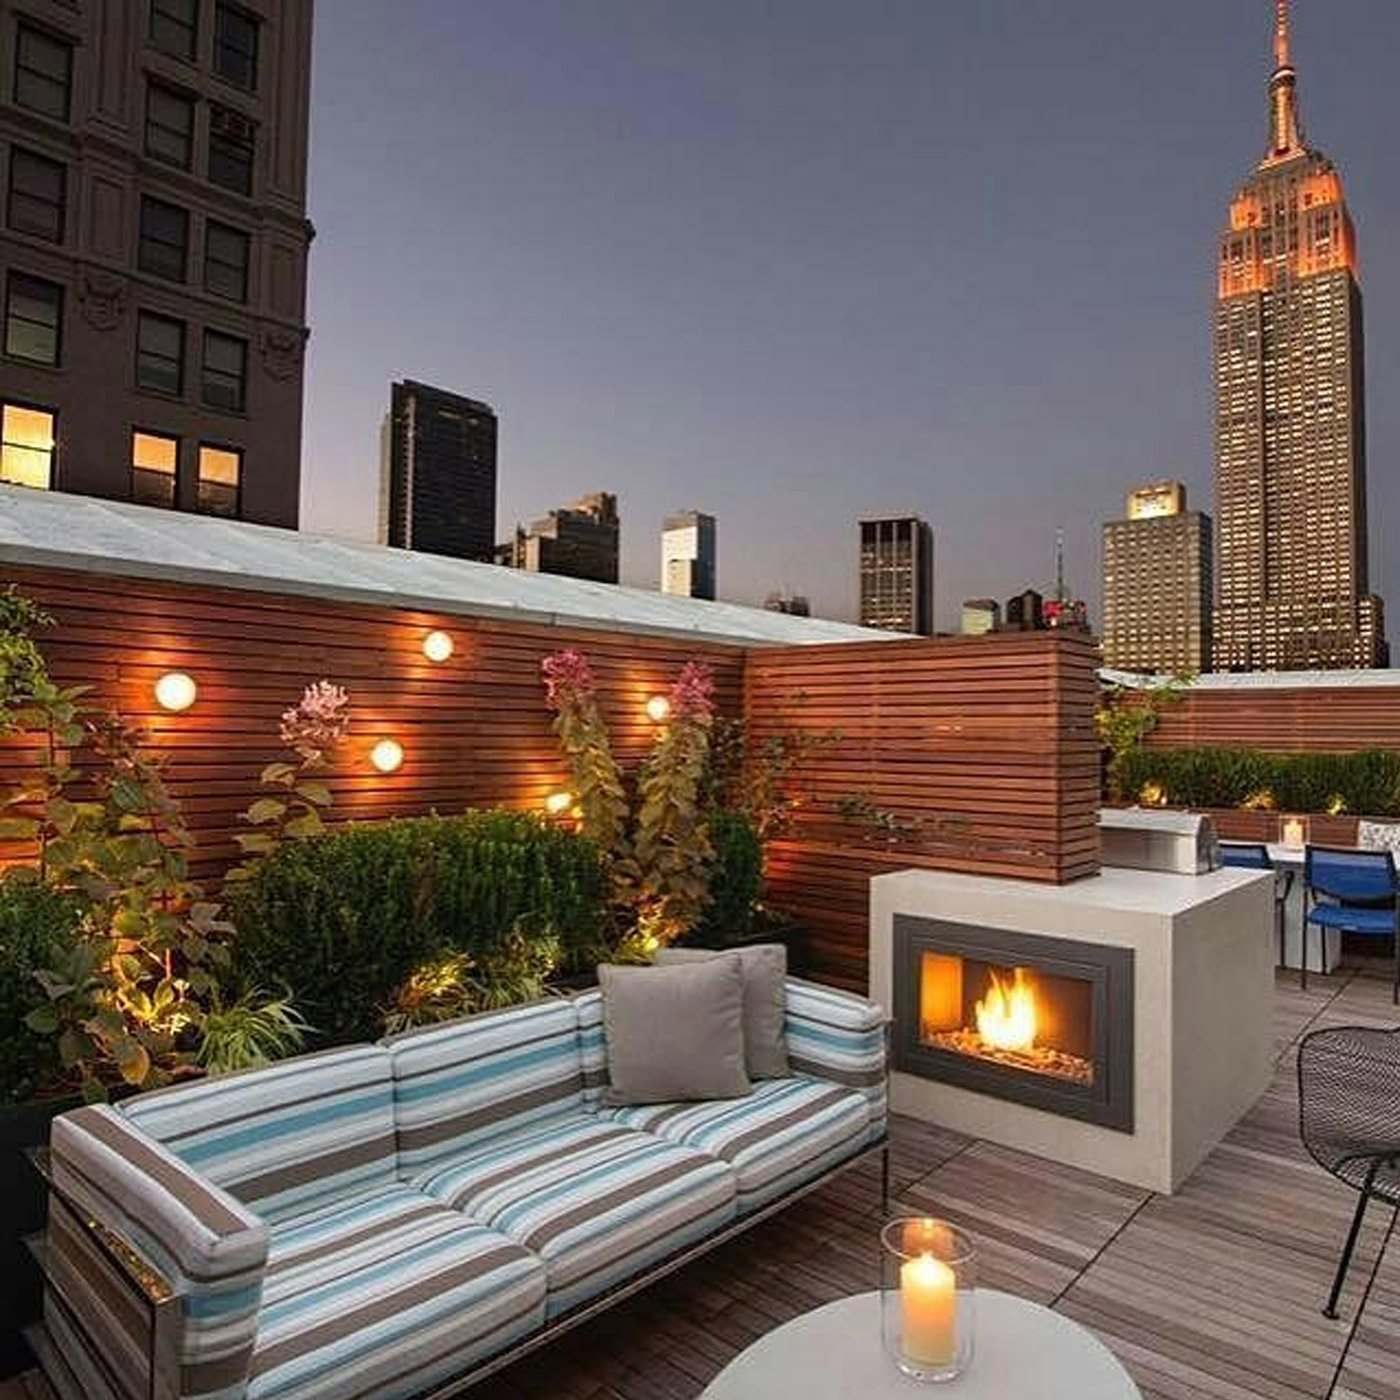 striped brown jordan sofa in NYC rooftop garden